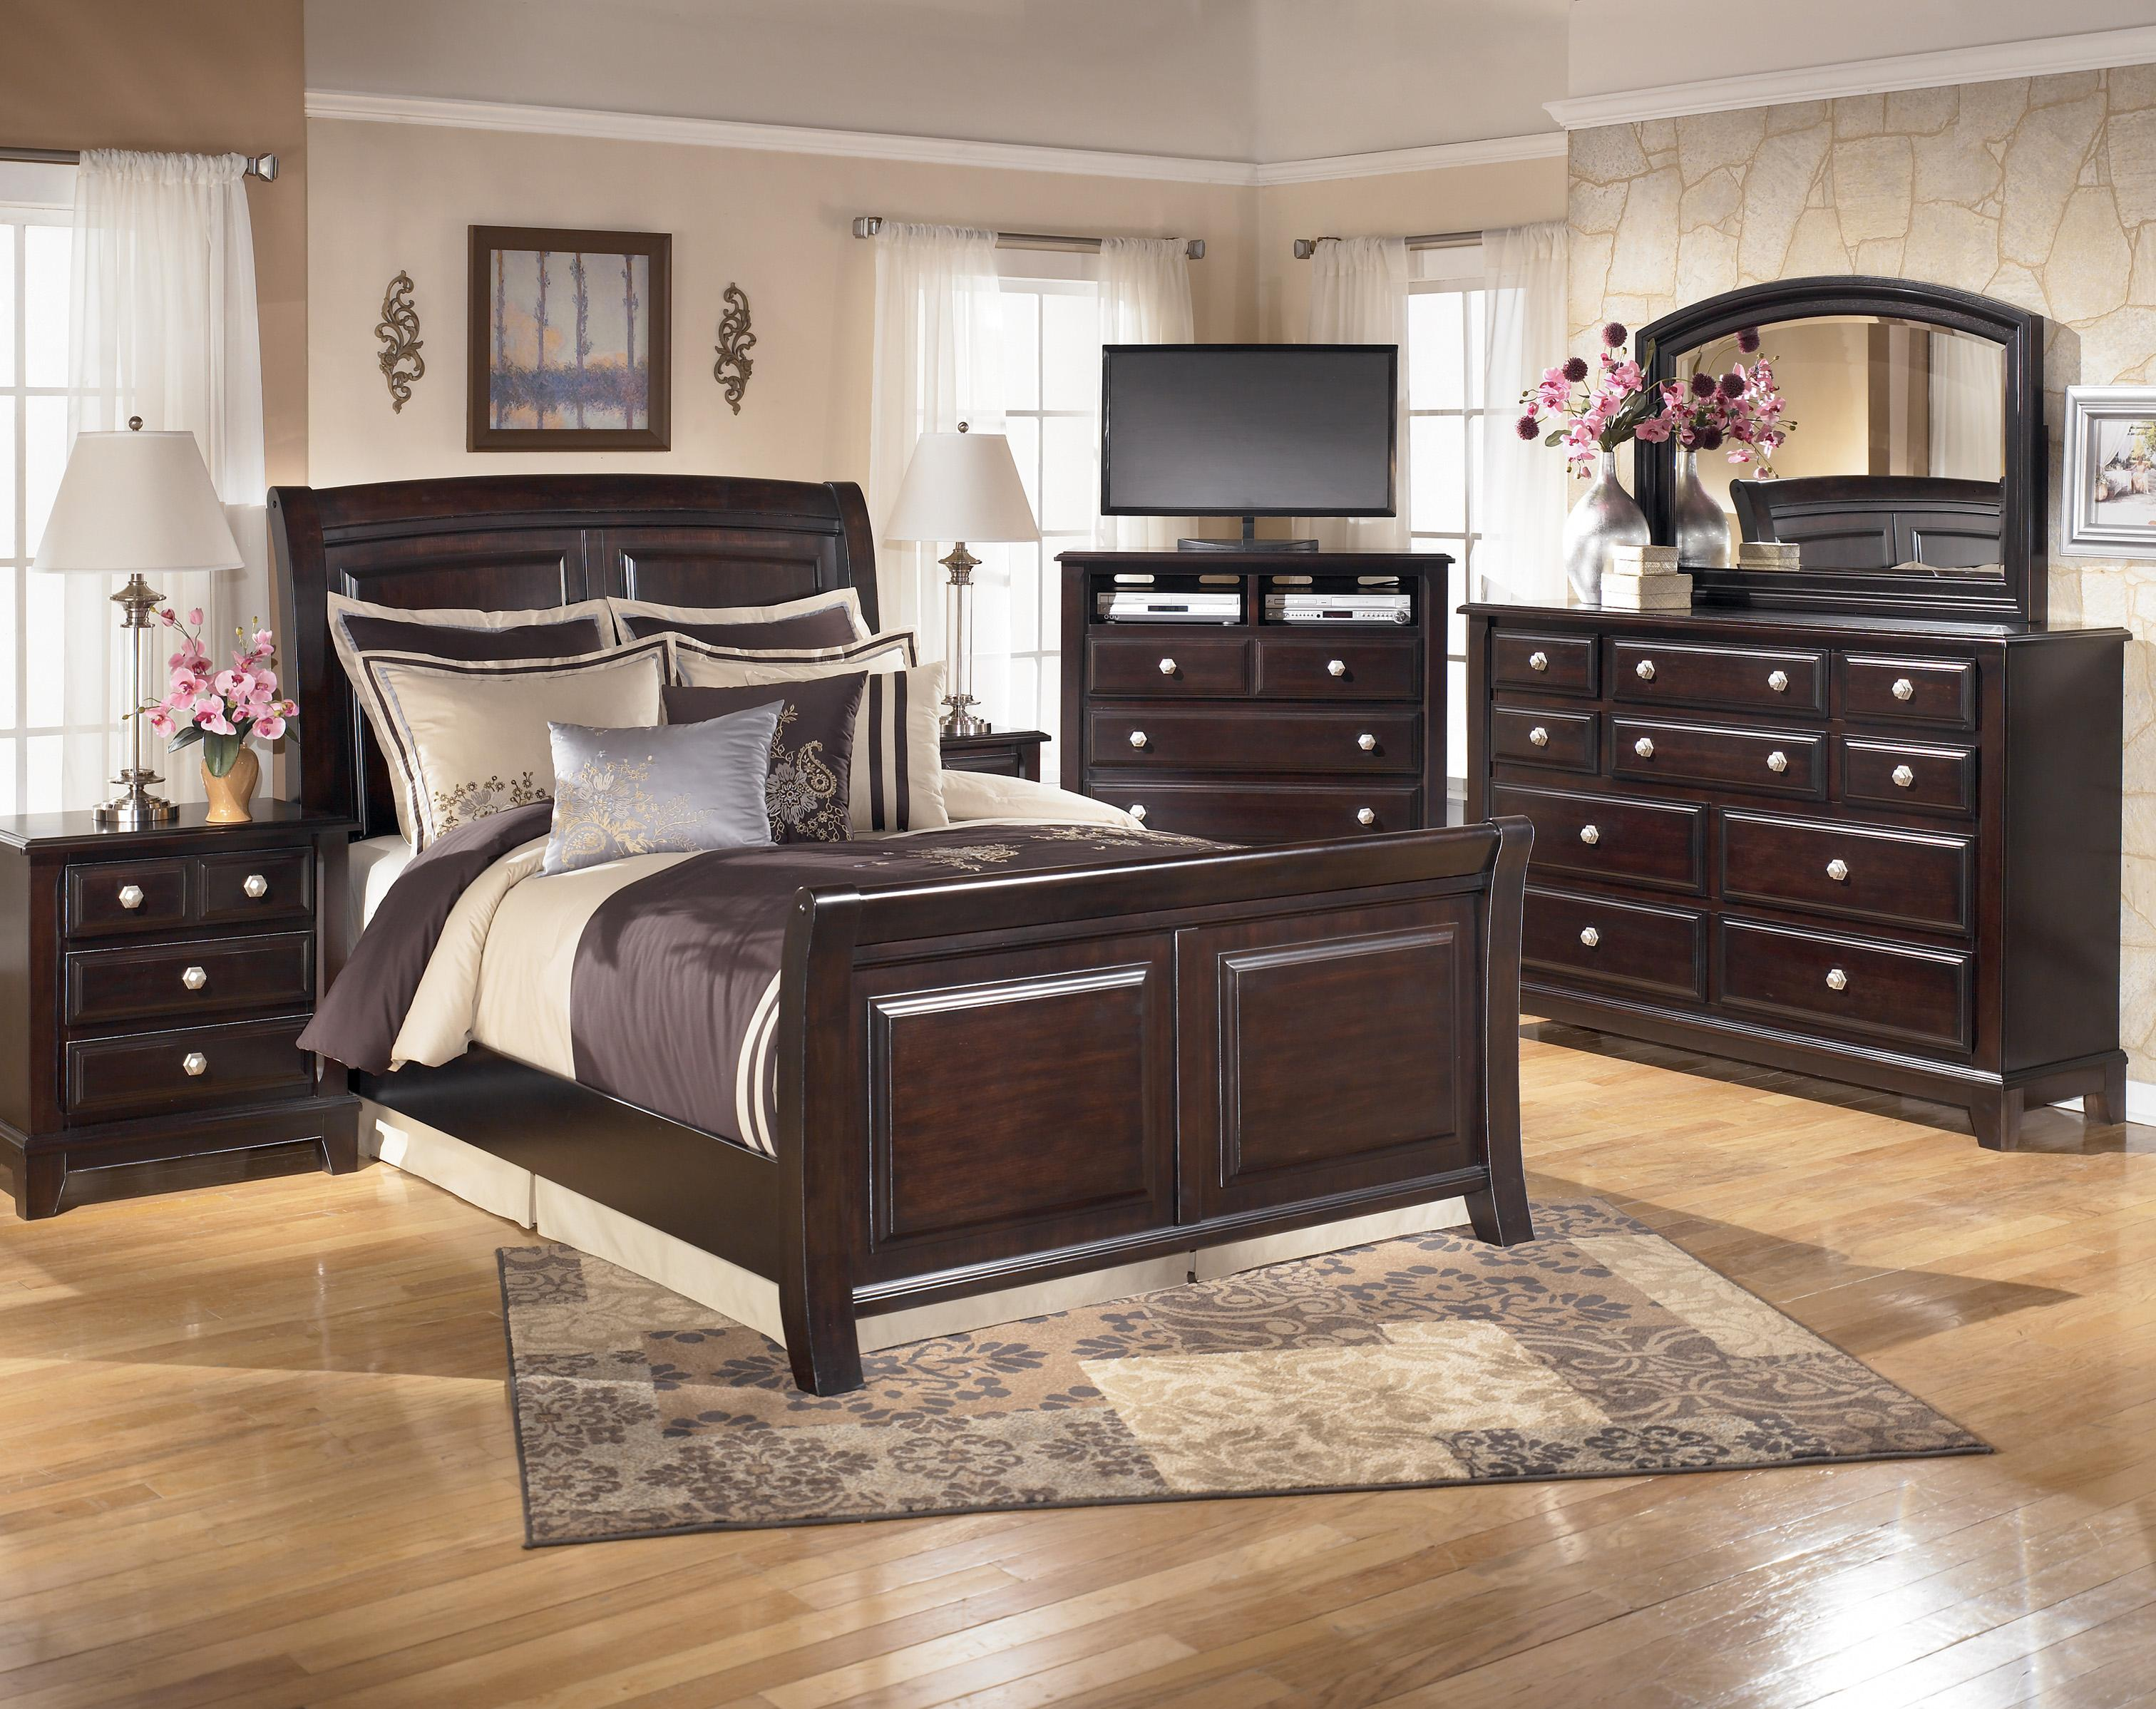 California King Sleigh Bed by Signature Design by Ashley